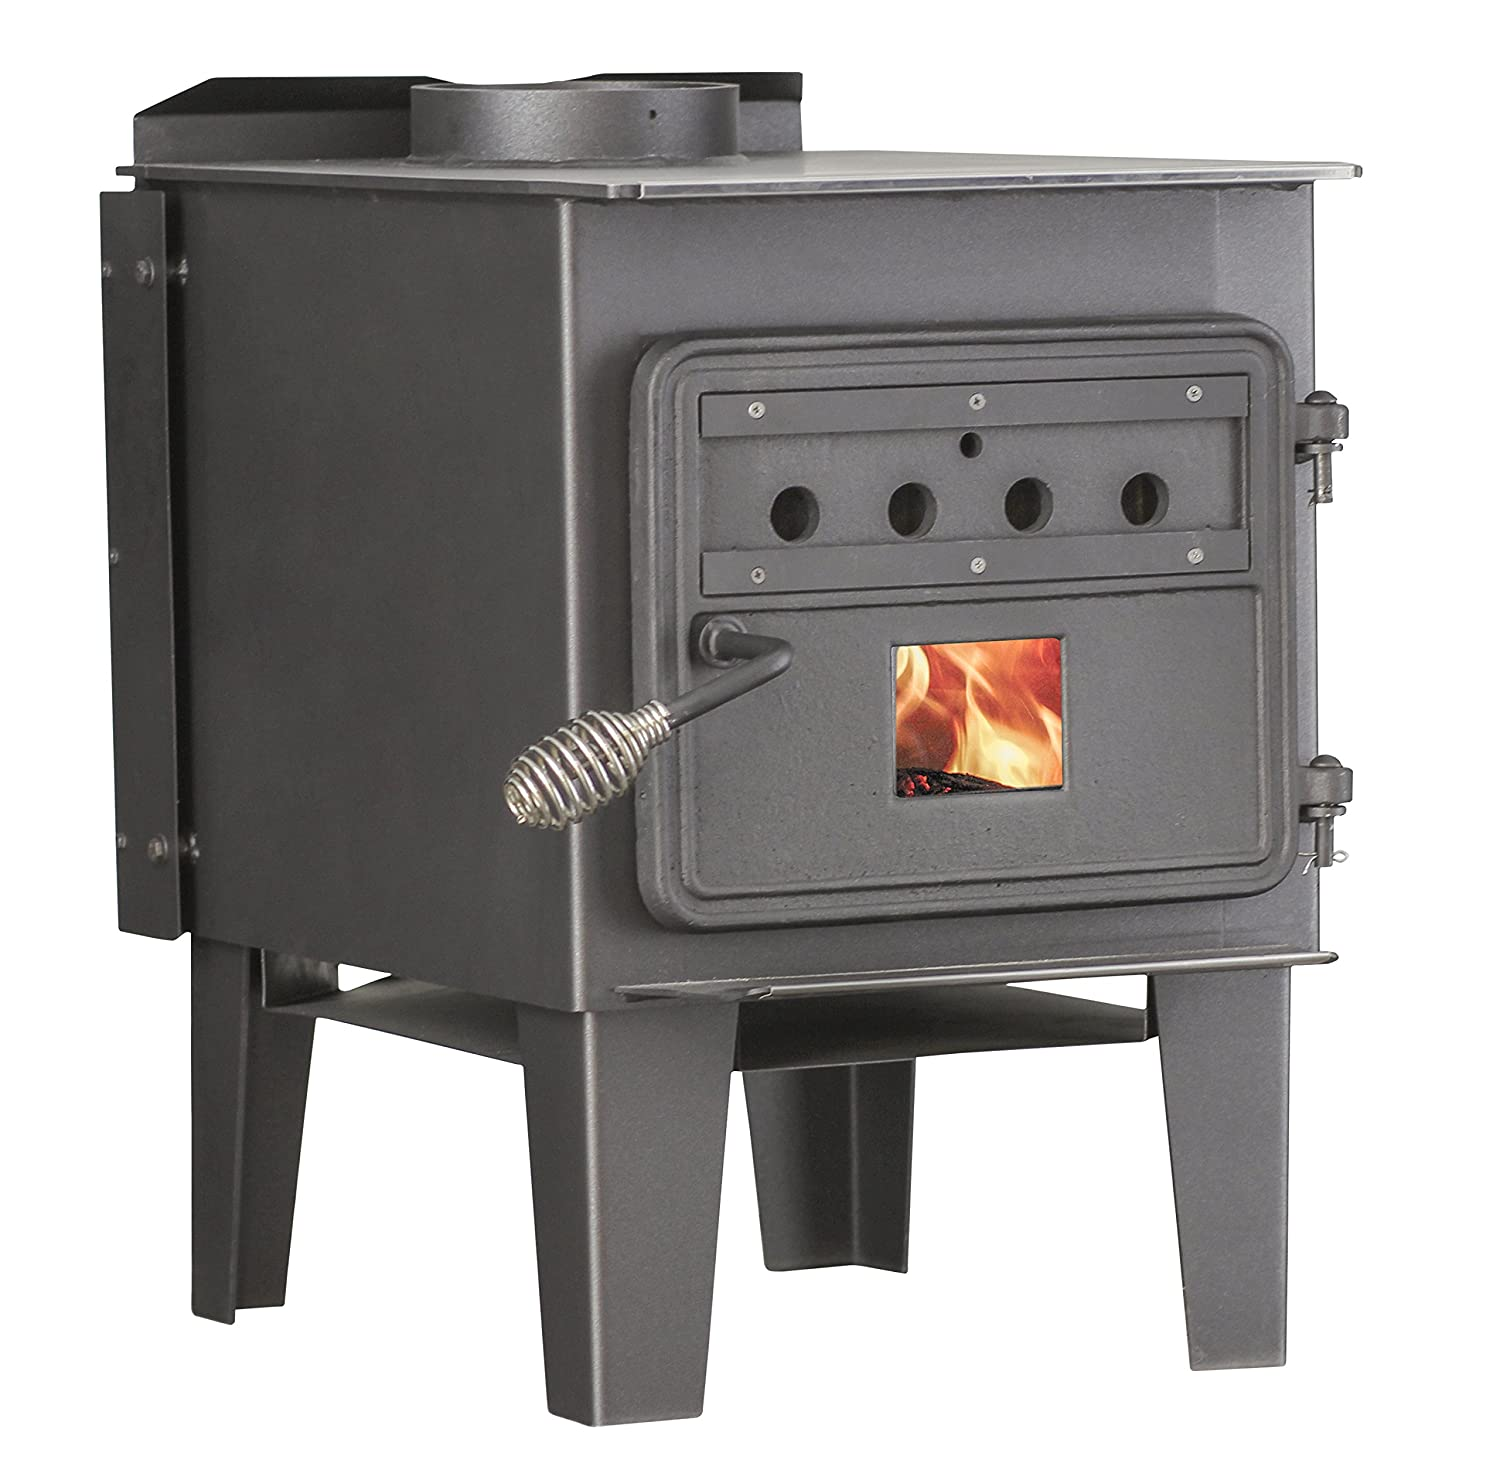 Amazon.com: Vogelzang VG150 Epa Certified Wood Stove, 68,000 Btus: Home &  Kitchen - Amazon.com: Vogelzang VG150 Epa Certified Wood Stove, 68,000 Btus